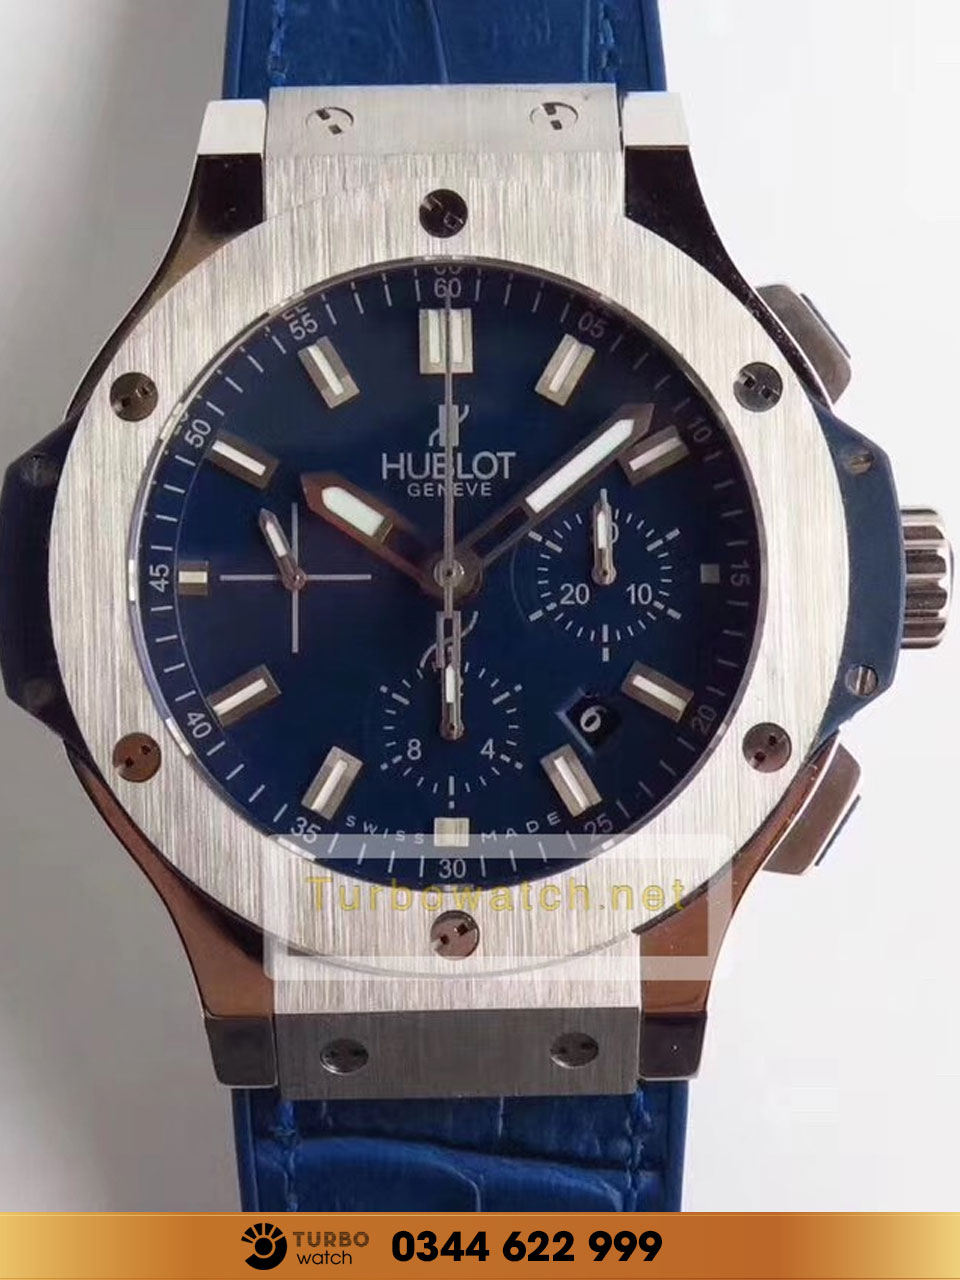 Hublot Big Bang Steel Blue Chronograph replica 1:1 CAO CẤP